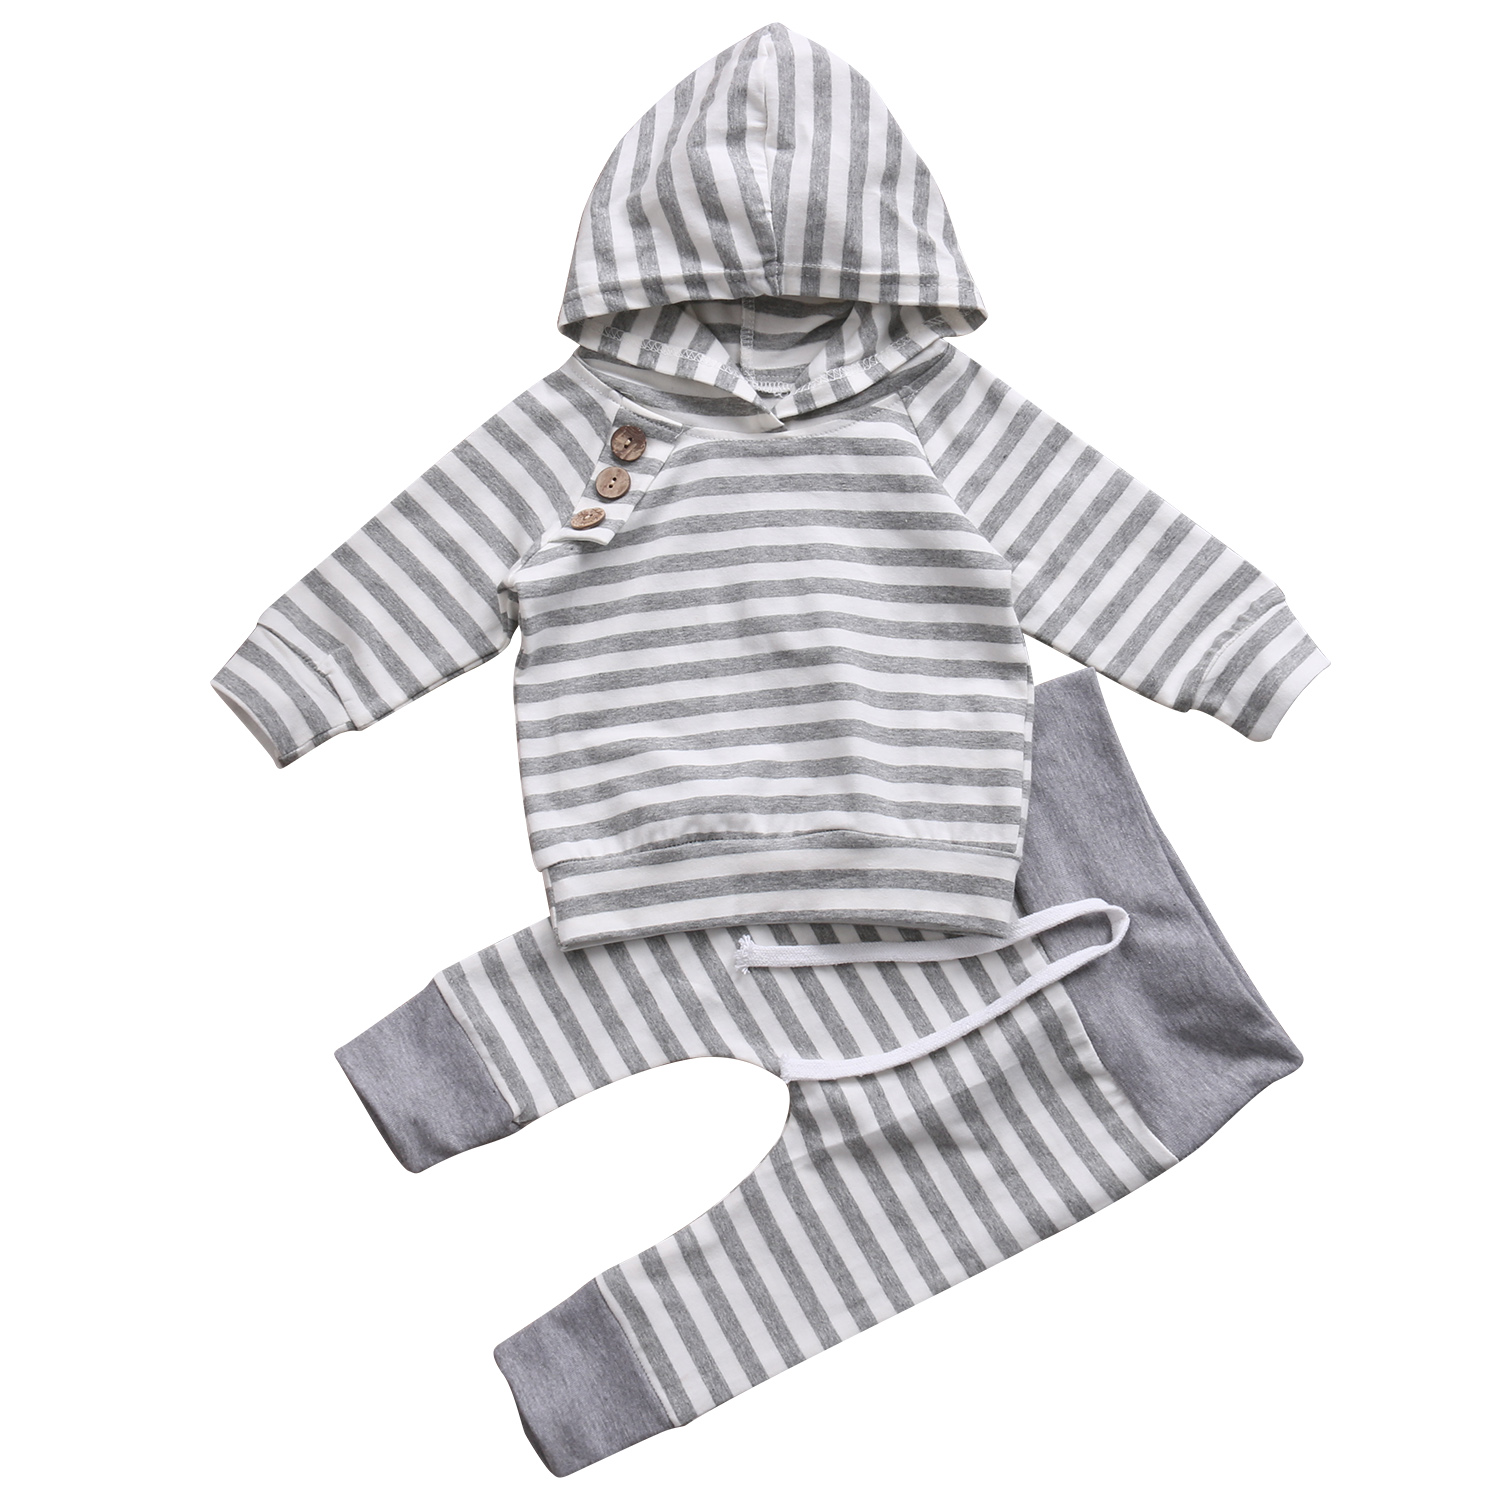 Autumn Newborn Infant Baby Boy Girl Clothes Stripe Hooded Long Sleeve T-shirt Tops+Pants Leggings Outfit Cotton Toddler 2pcs